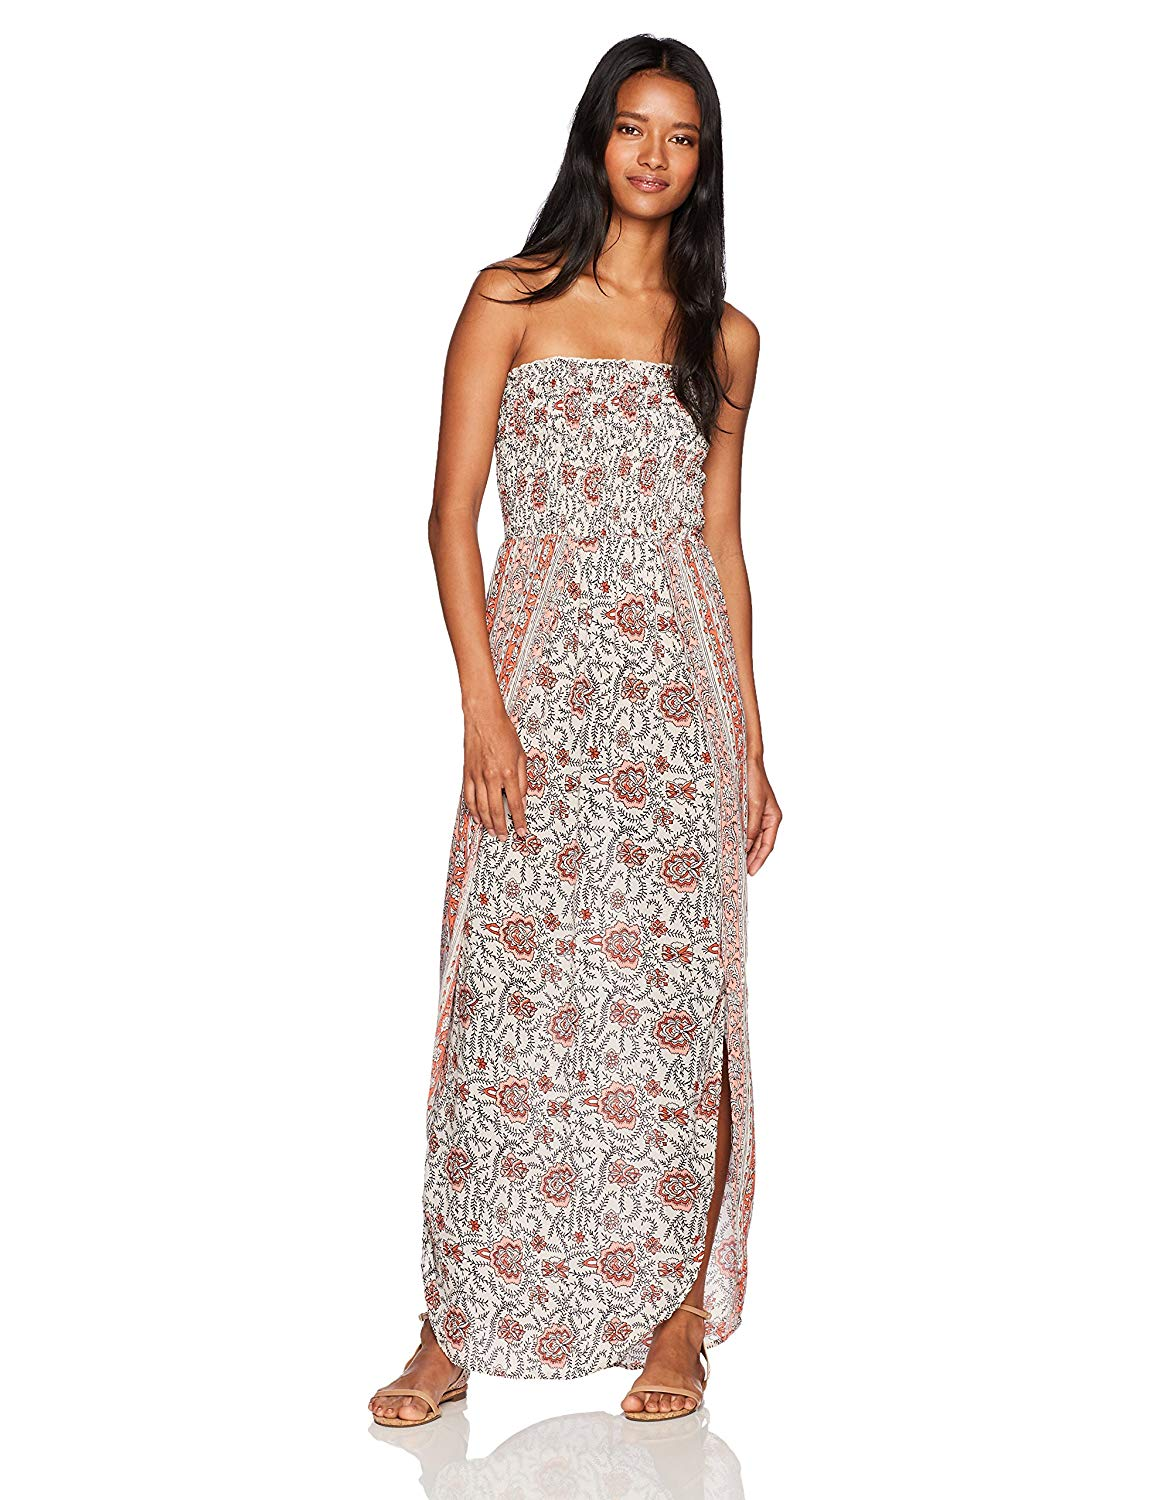 357b5222541e Get Quotations · Angie Women s Smocked Printed Strapless Wrap Flyaway Maxi  Dress